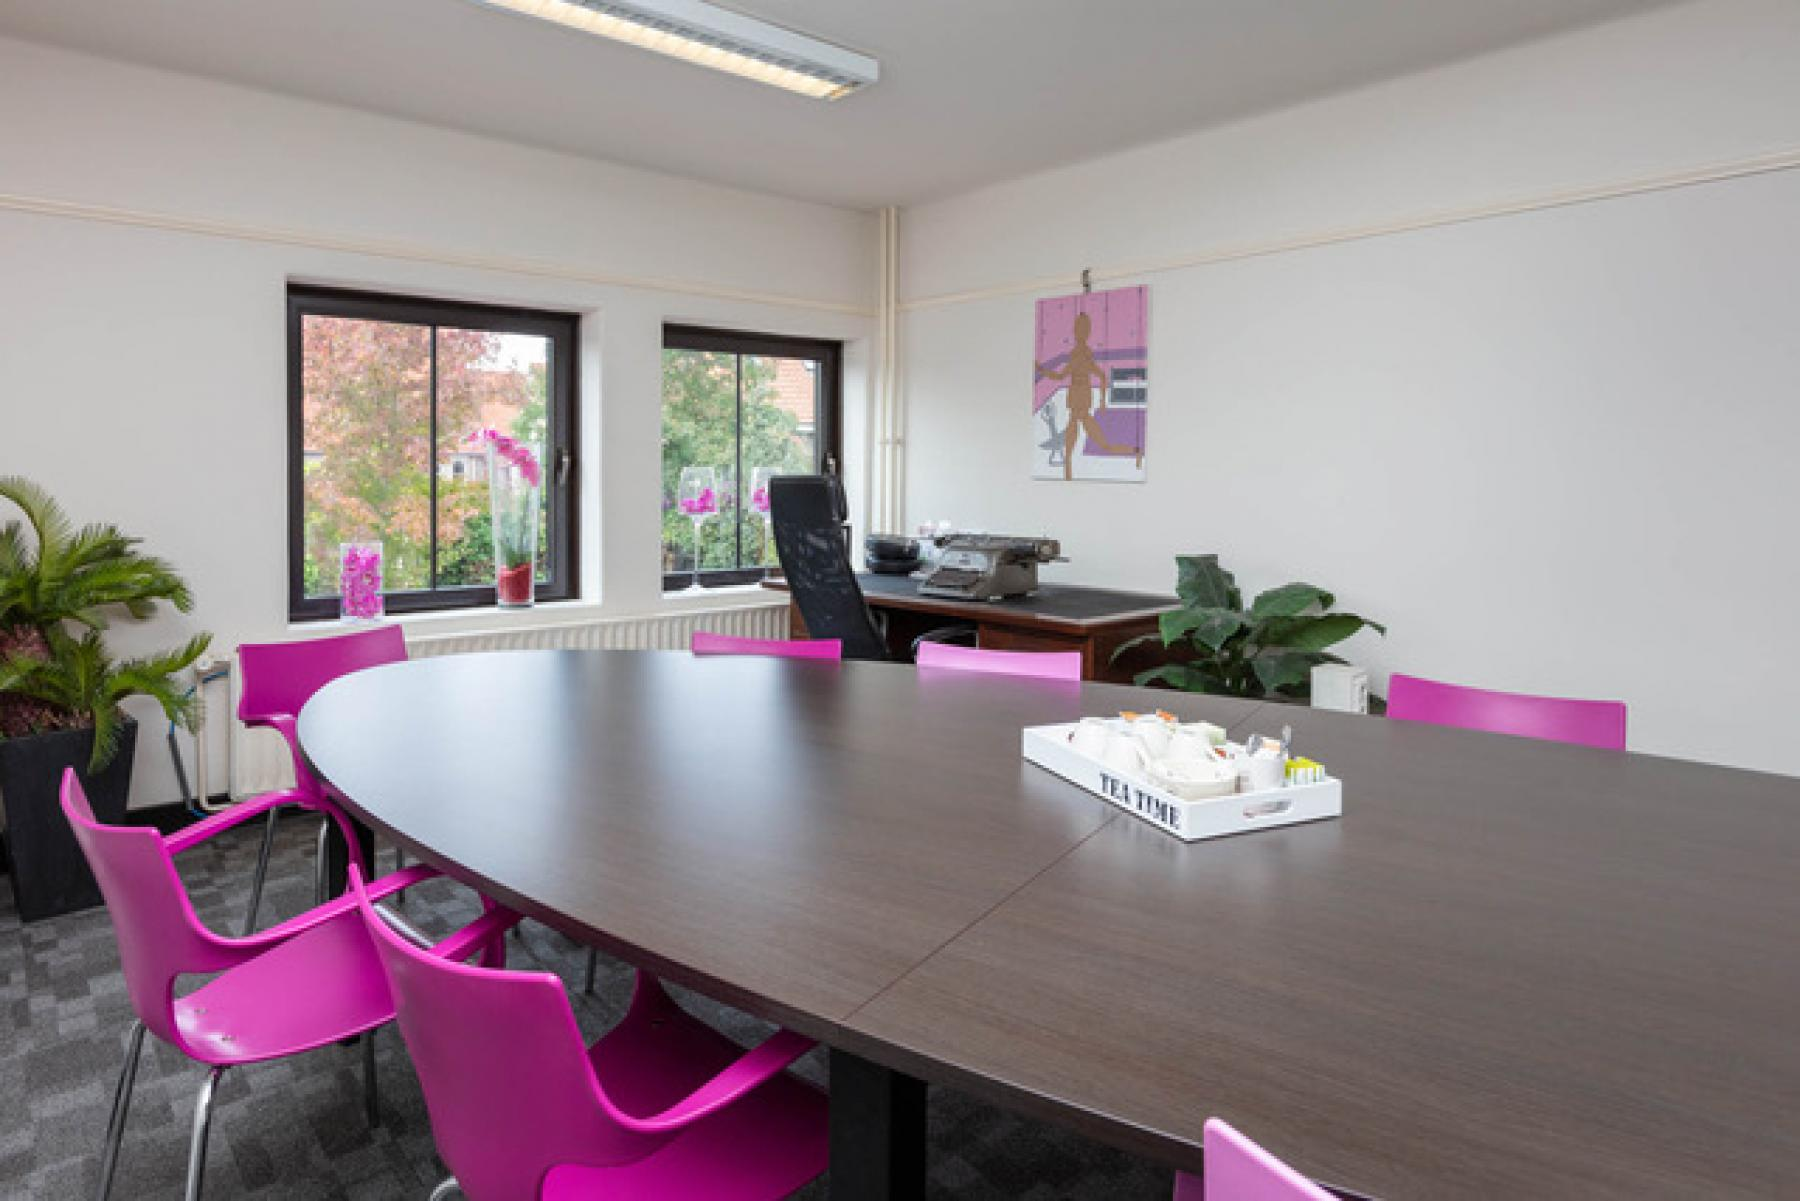 Rent office space Hofkampstraat 49, Almelo (23)